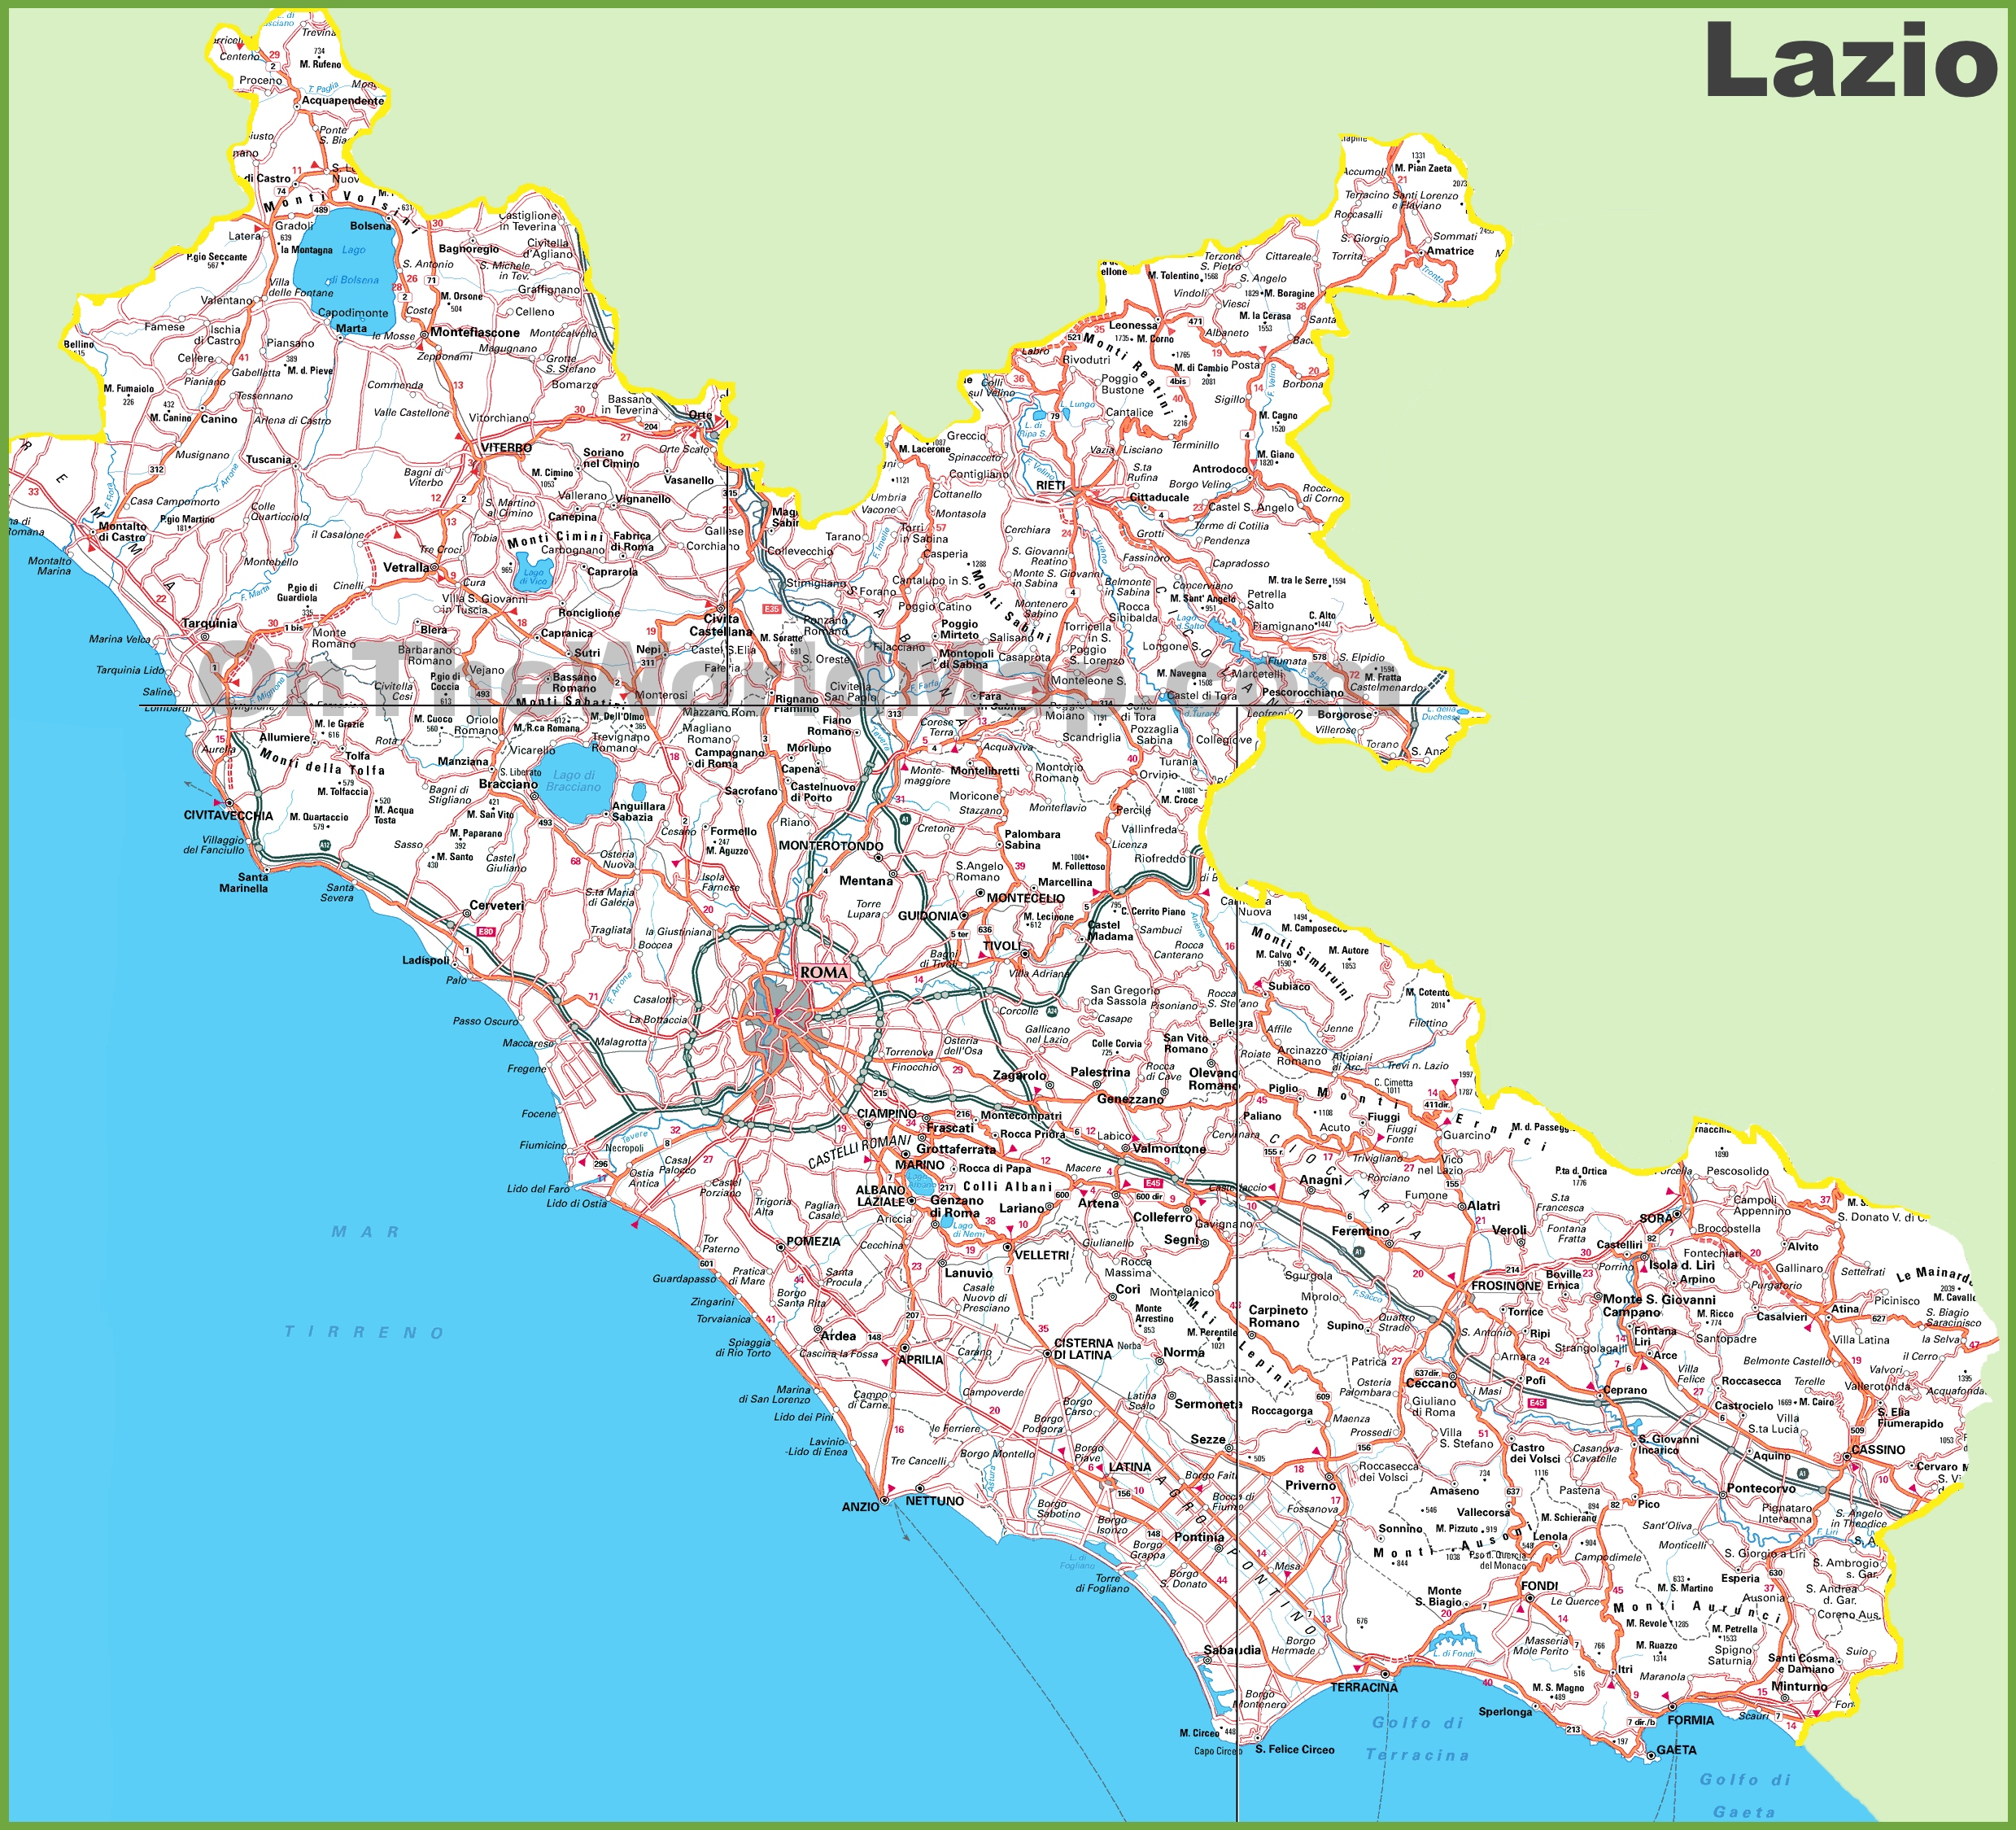 Large Detailed Map Of Lazio With Cities And Towns - Cities map of italy